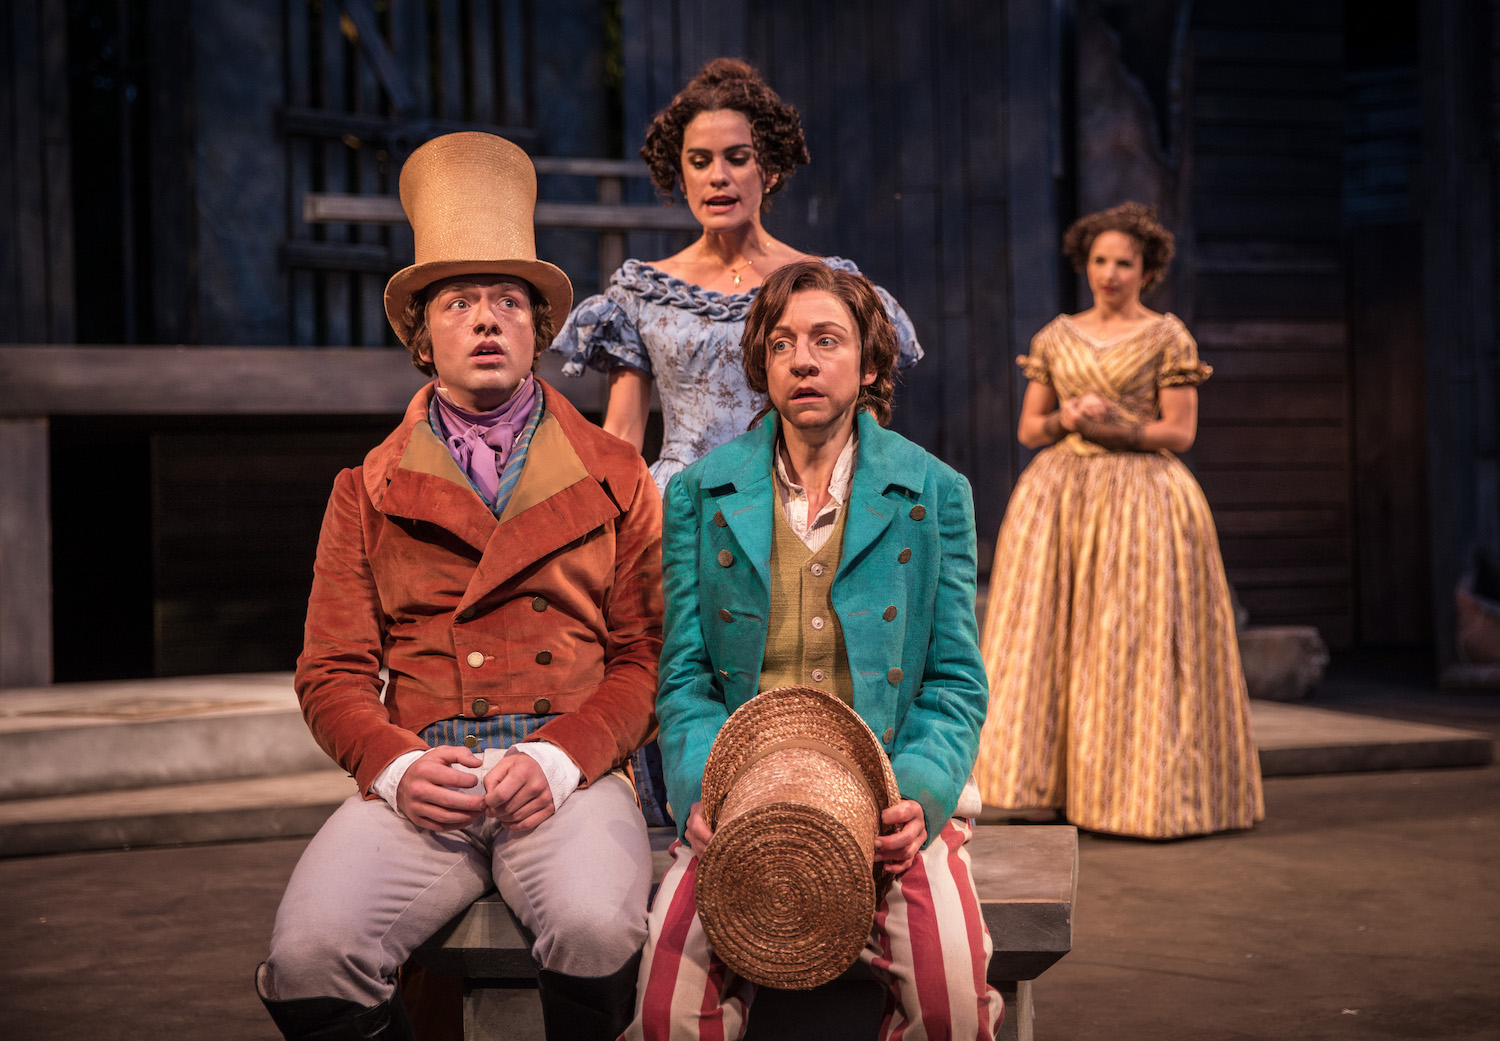 American Players Theatre. Casey Hoekstra, Cristina Panfilio, Melisa Pereyra and Laura Rook, The Comedy of Errors, 2016. Photo by Liz Lauren.